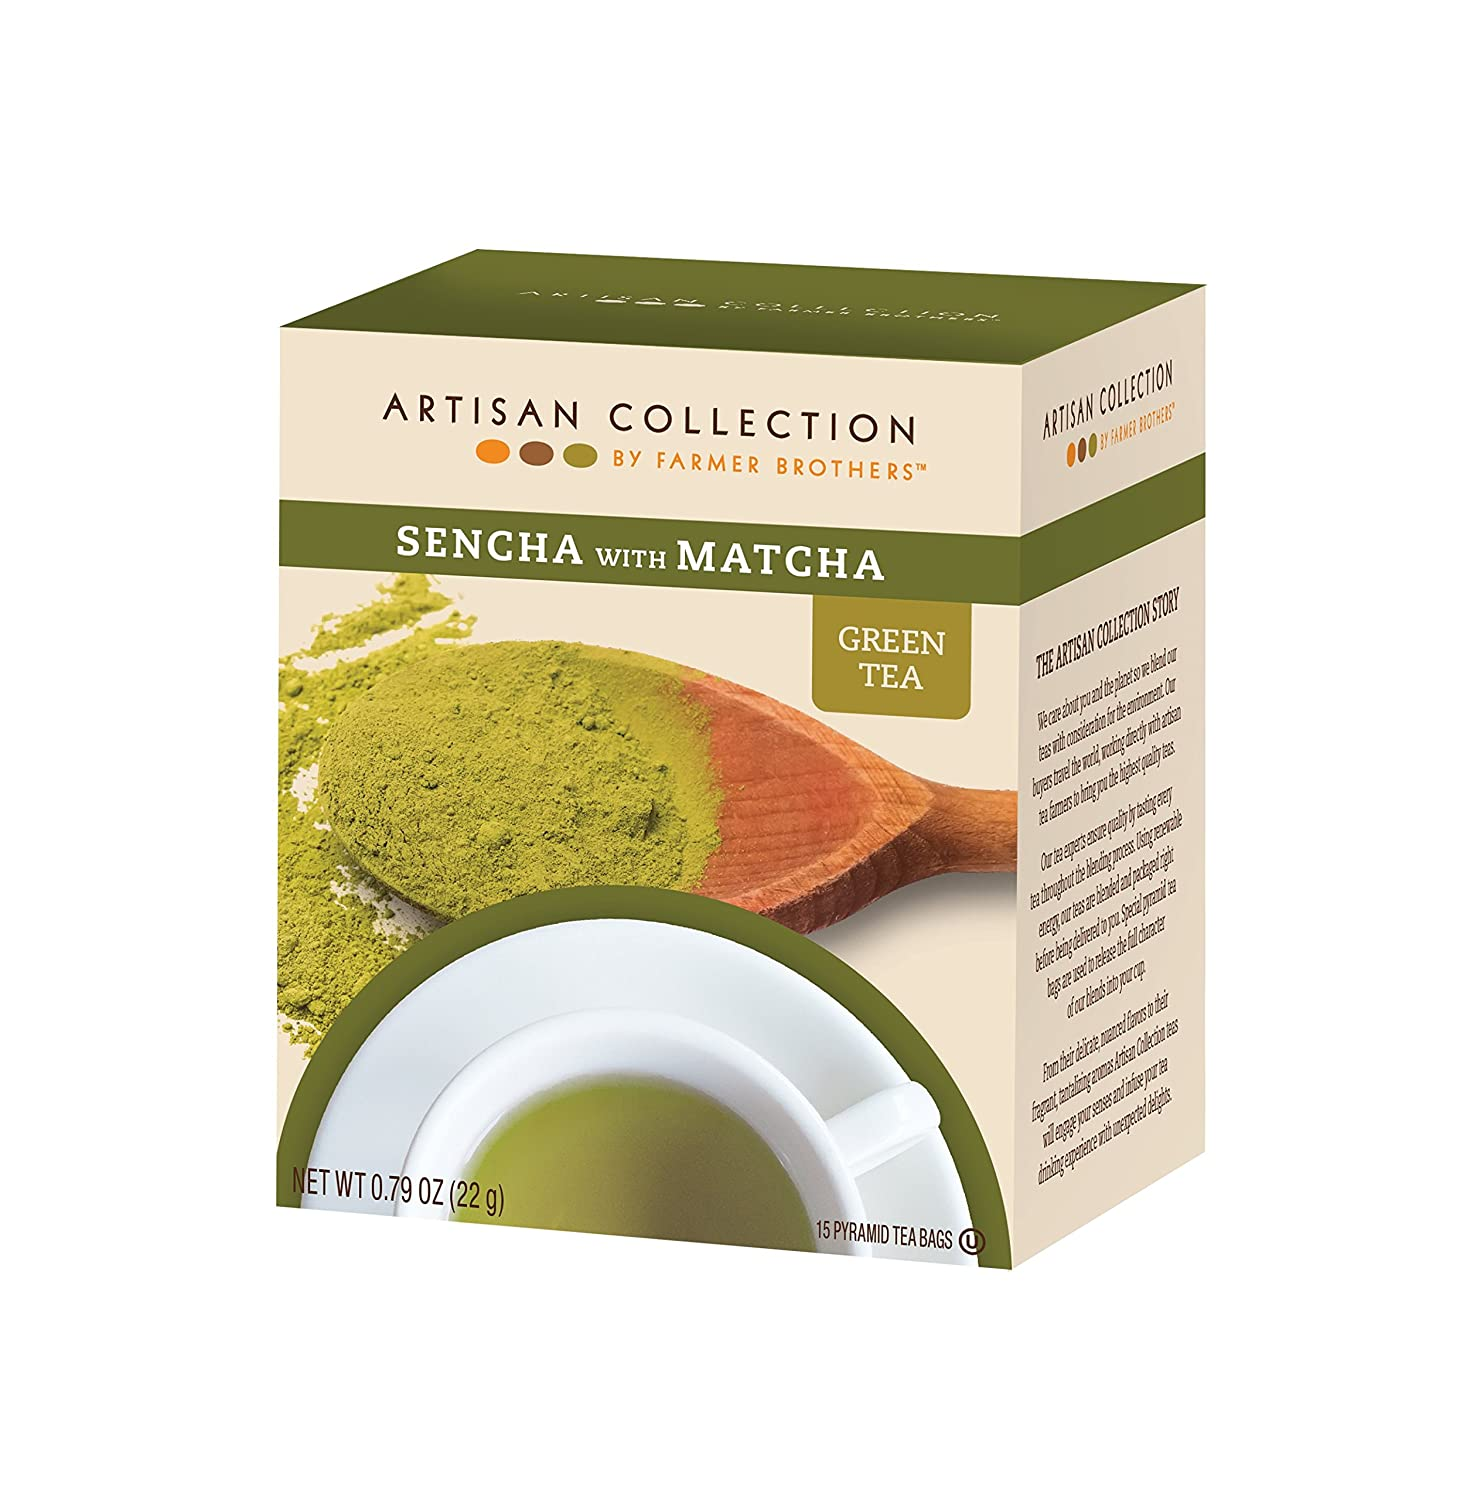 Artisan Collection by Farmer Brothers (Sencha with Matcha Green Tea), 6/15 ct boxes 81wtaHcK6yL